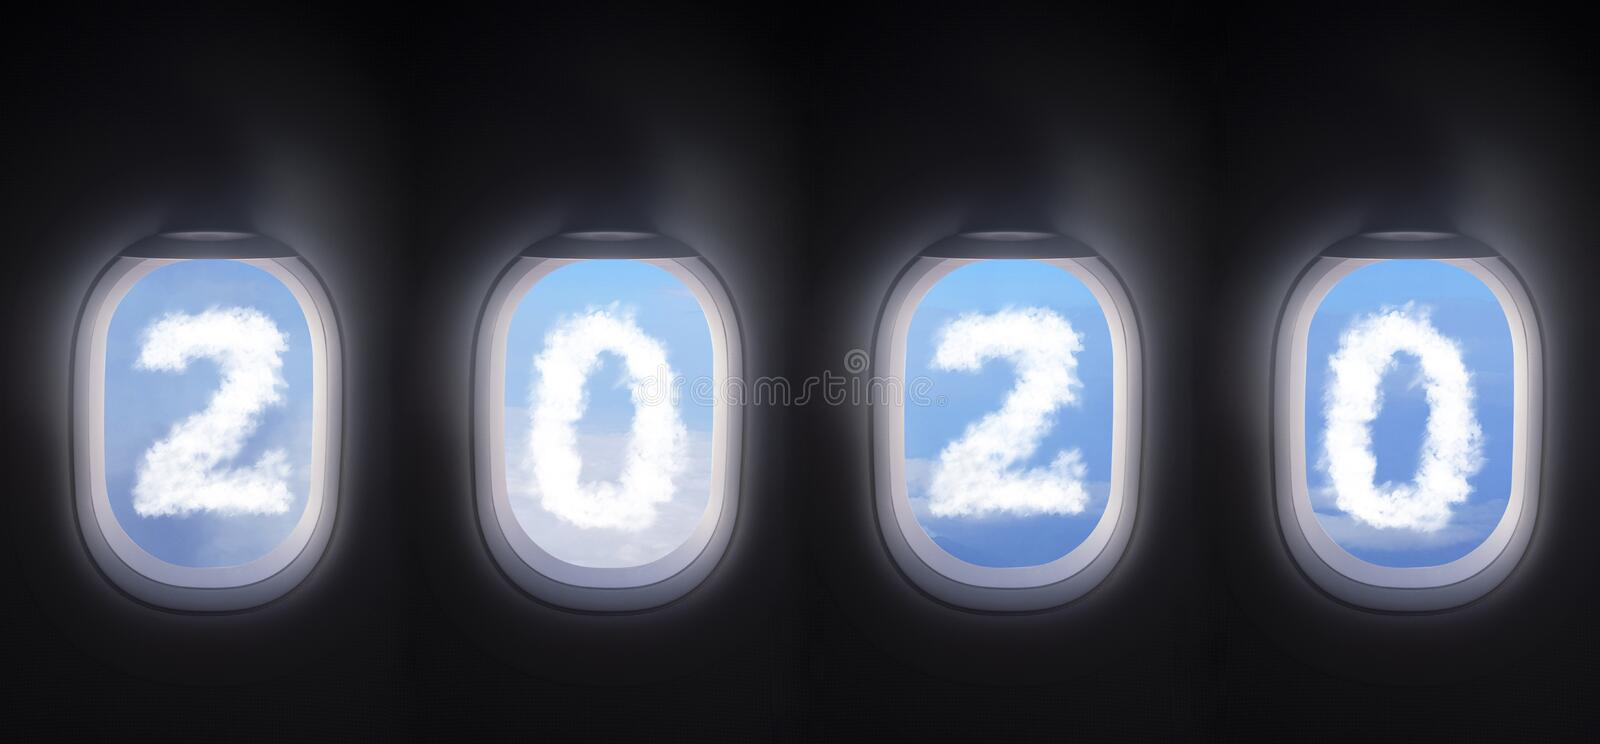 Cloud 2020 outside the plane window, four airplane windows open white window shutter wide with blue sky view and white cloud royalty free stock image